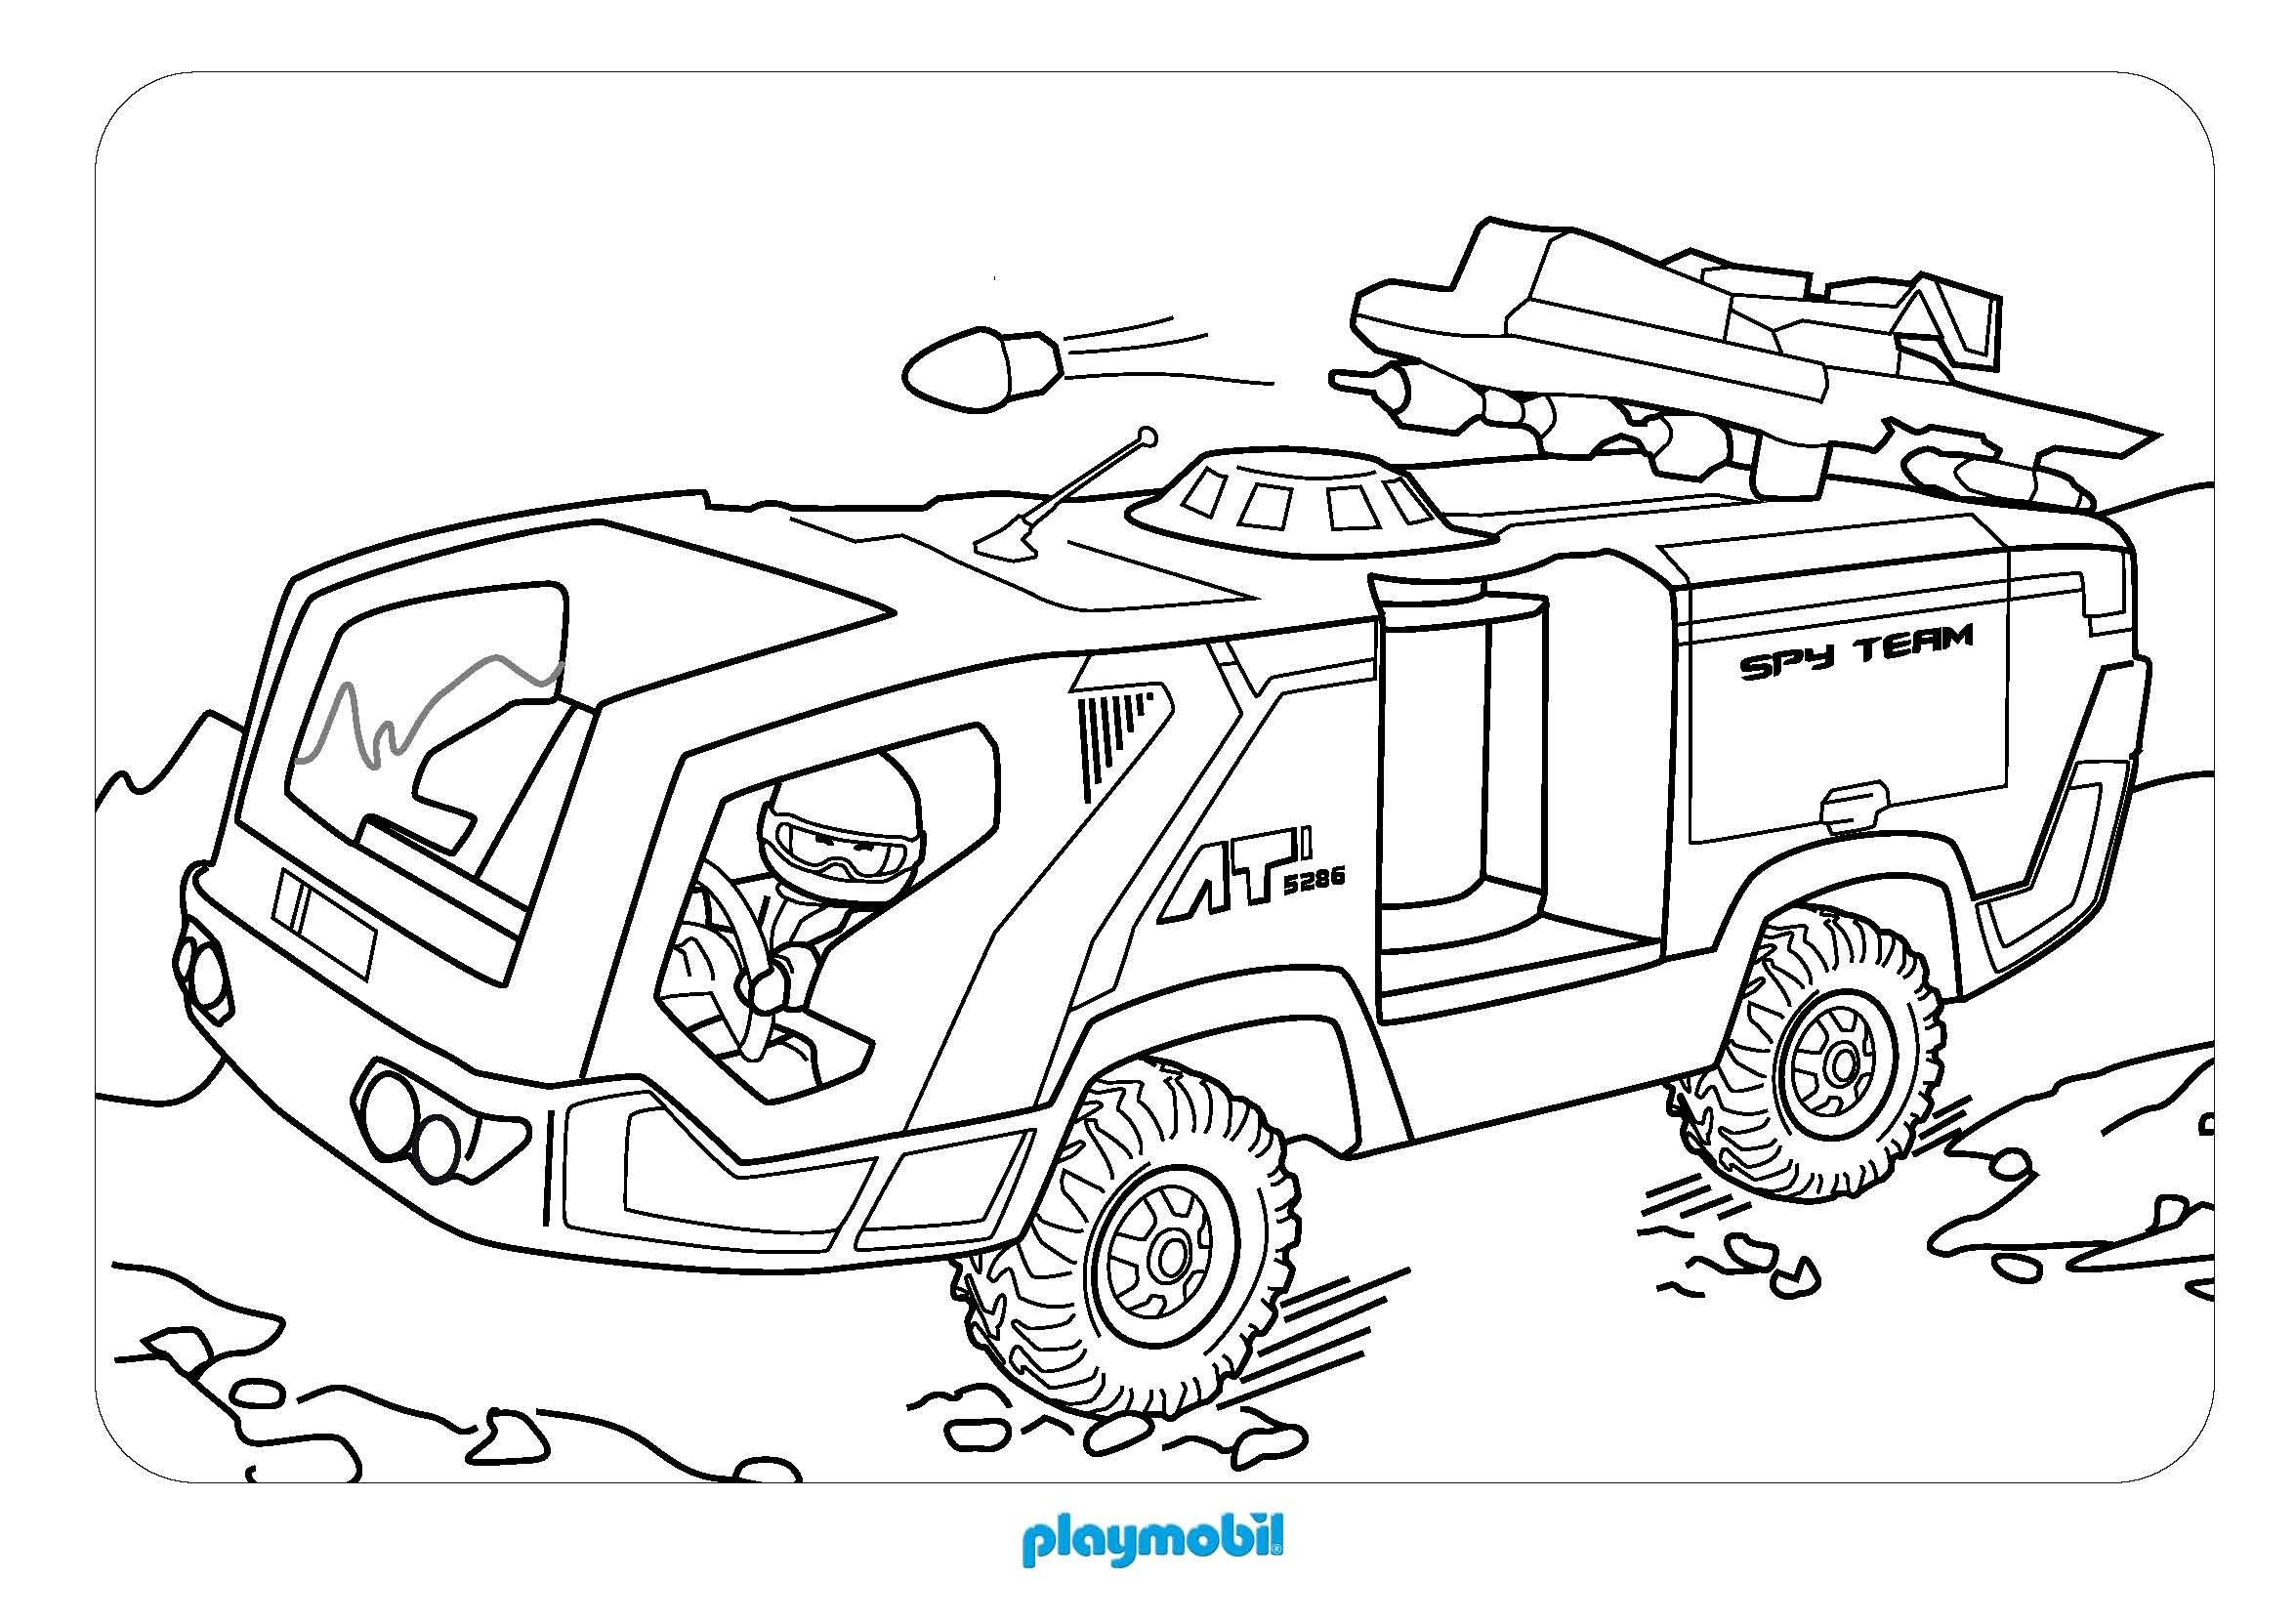 Coloriage Playmobil Foot.Coloriage Playmobil Coloriage Coloriage Gratuit Et Playmobil